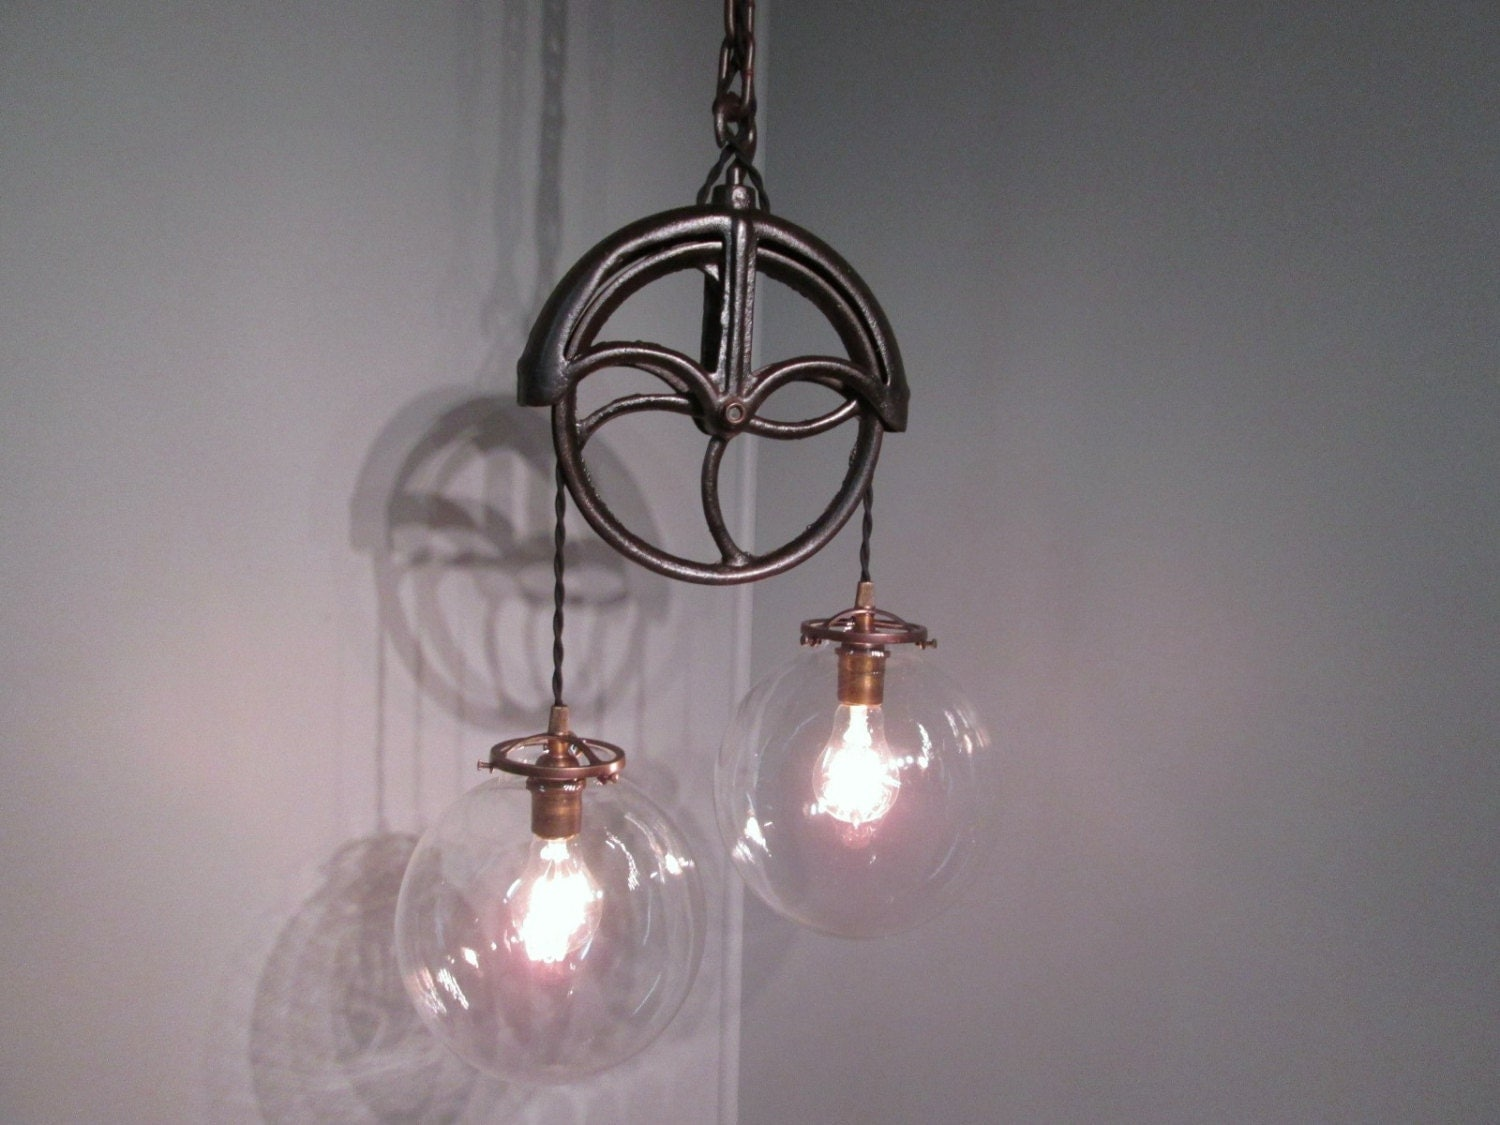 vintage industrial light pulley pendant ceiling light with